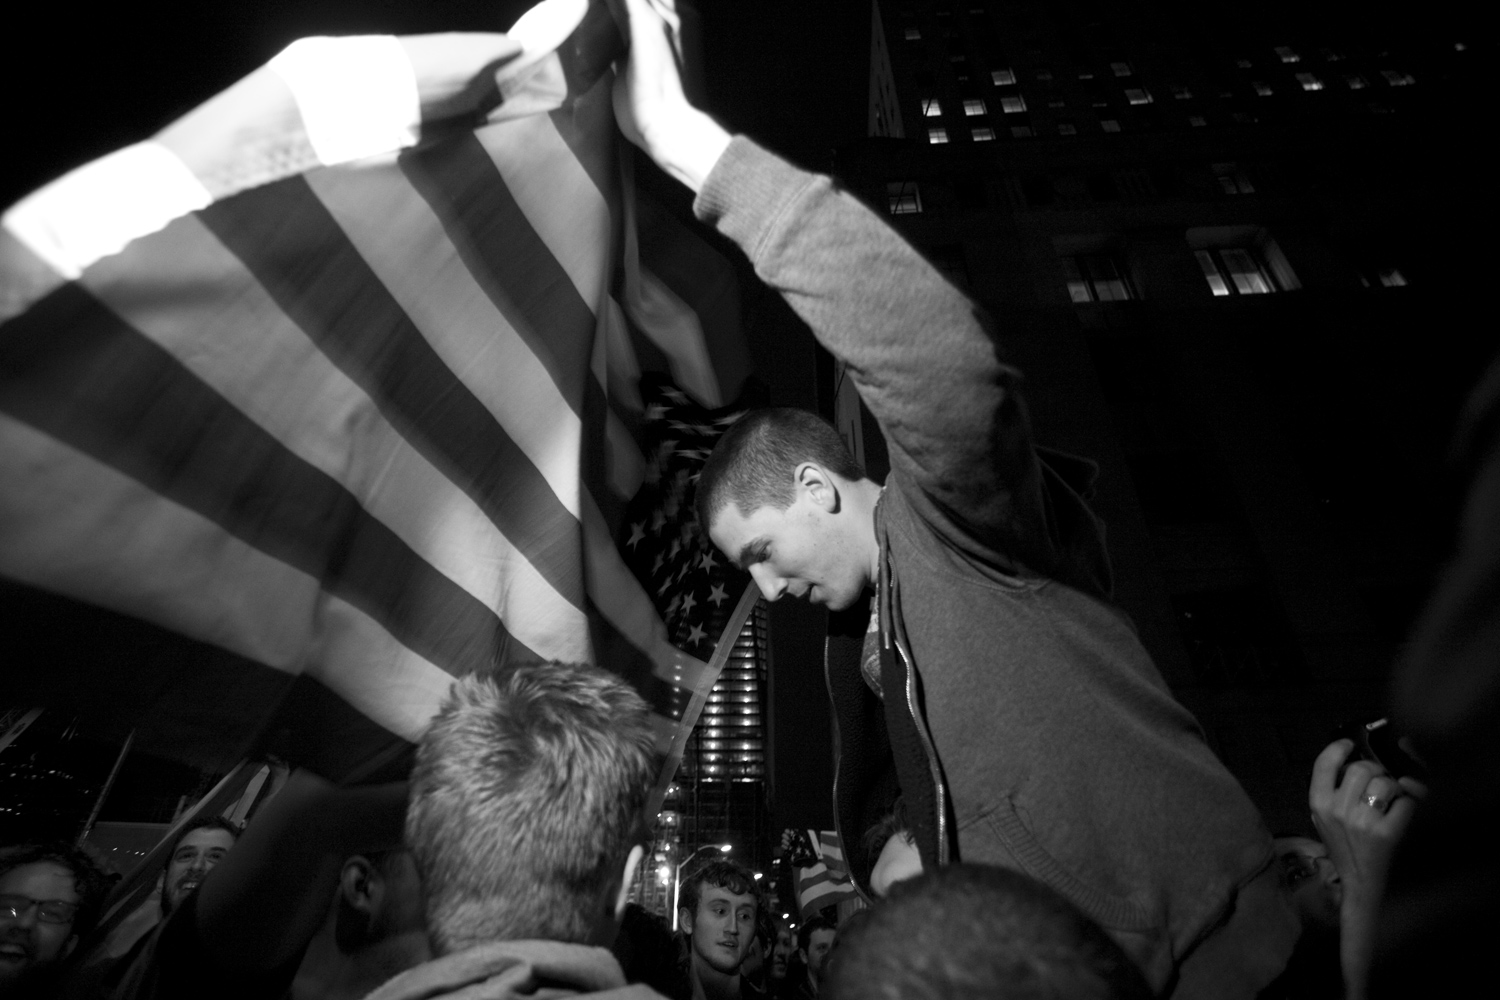 A young man gets a lift from his friend to wave a flag over the crowd.